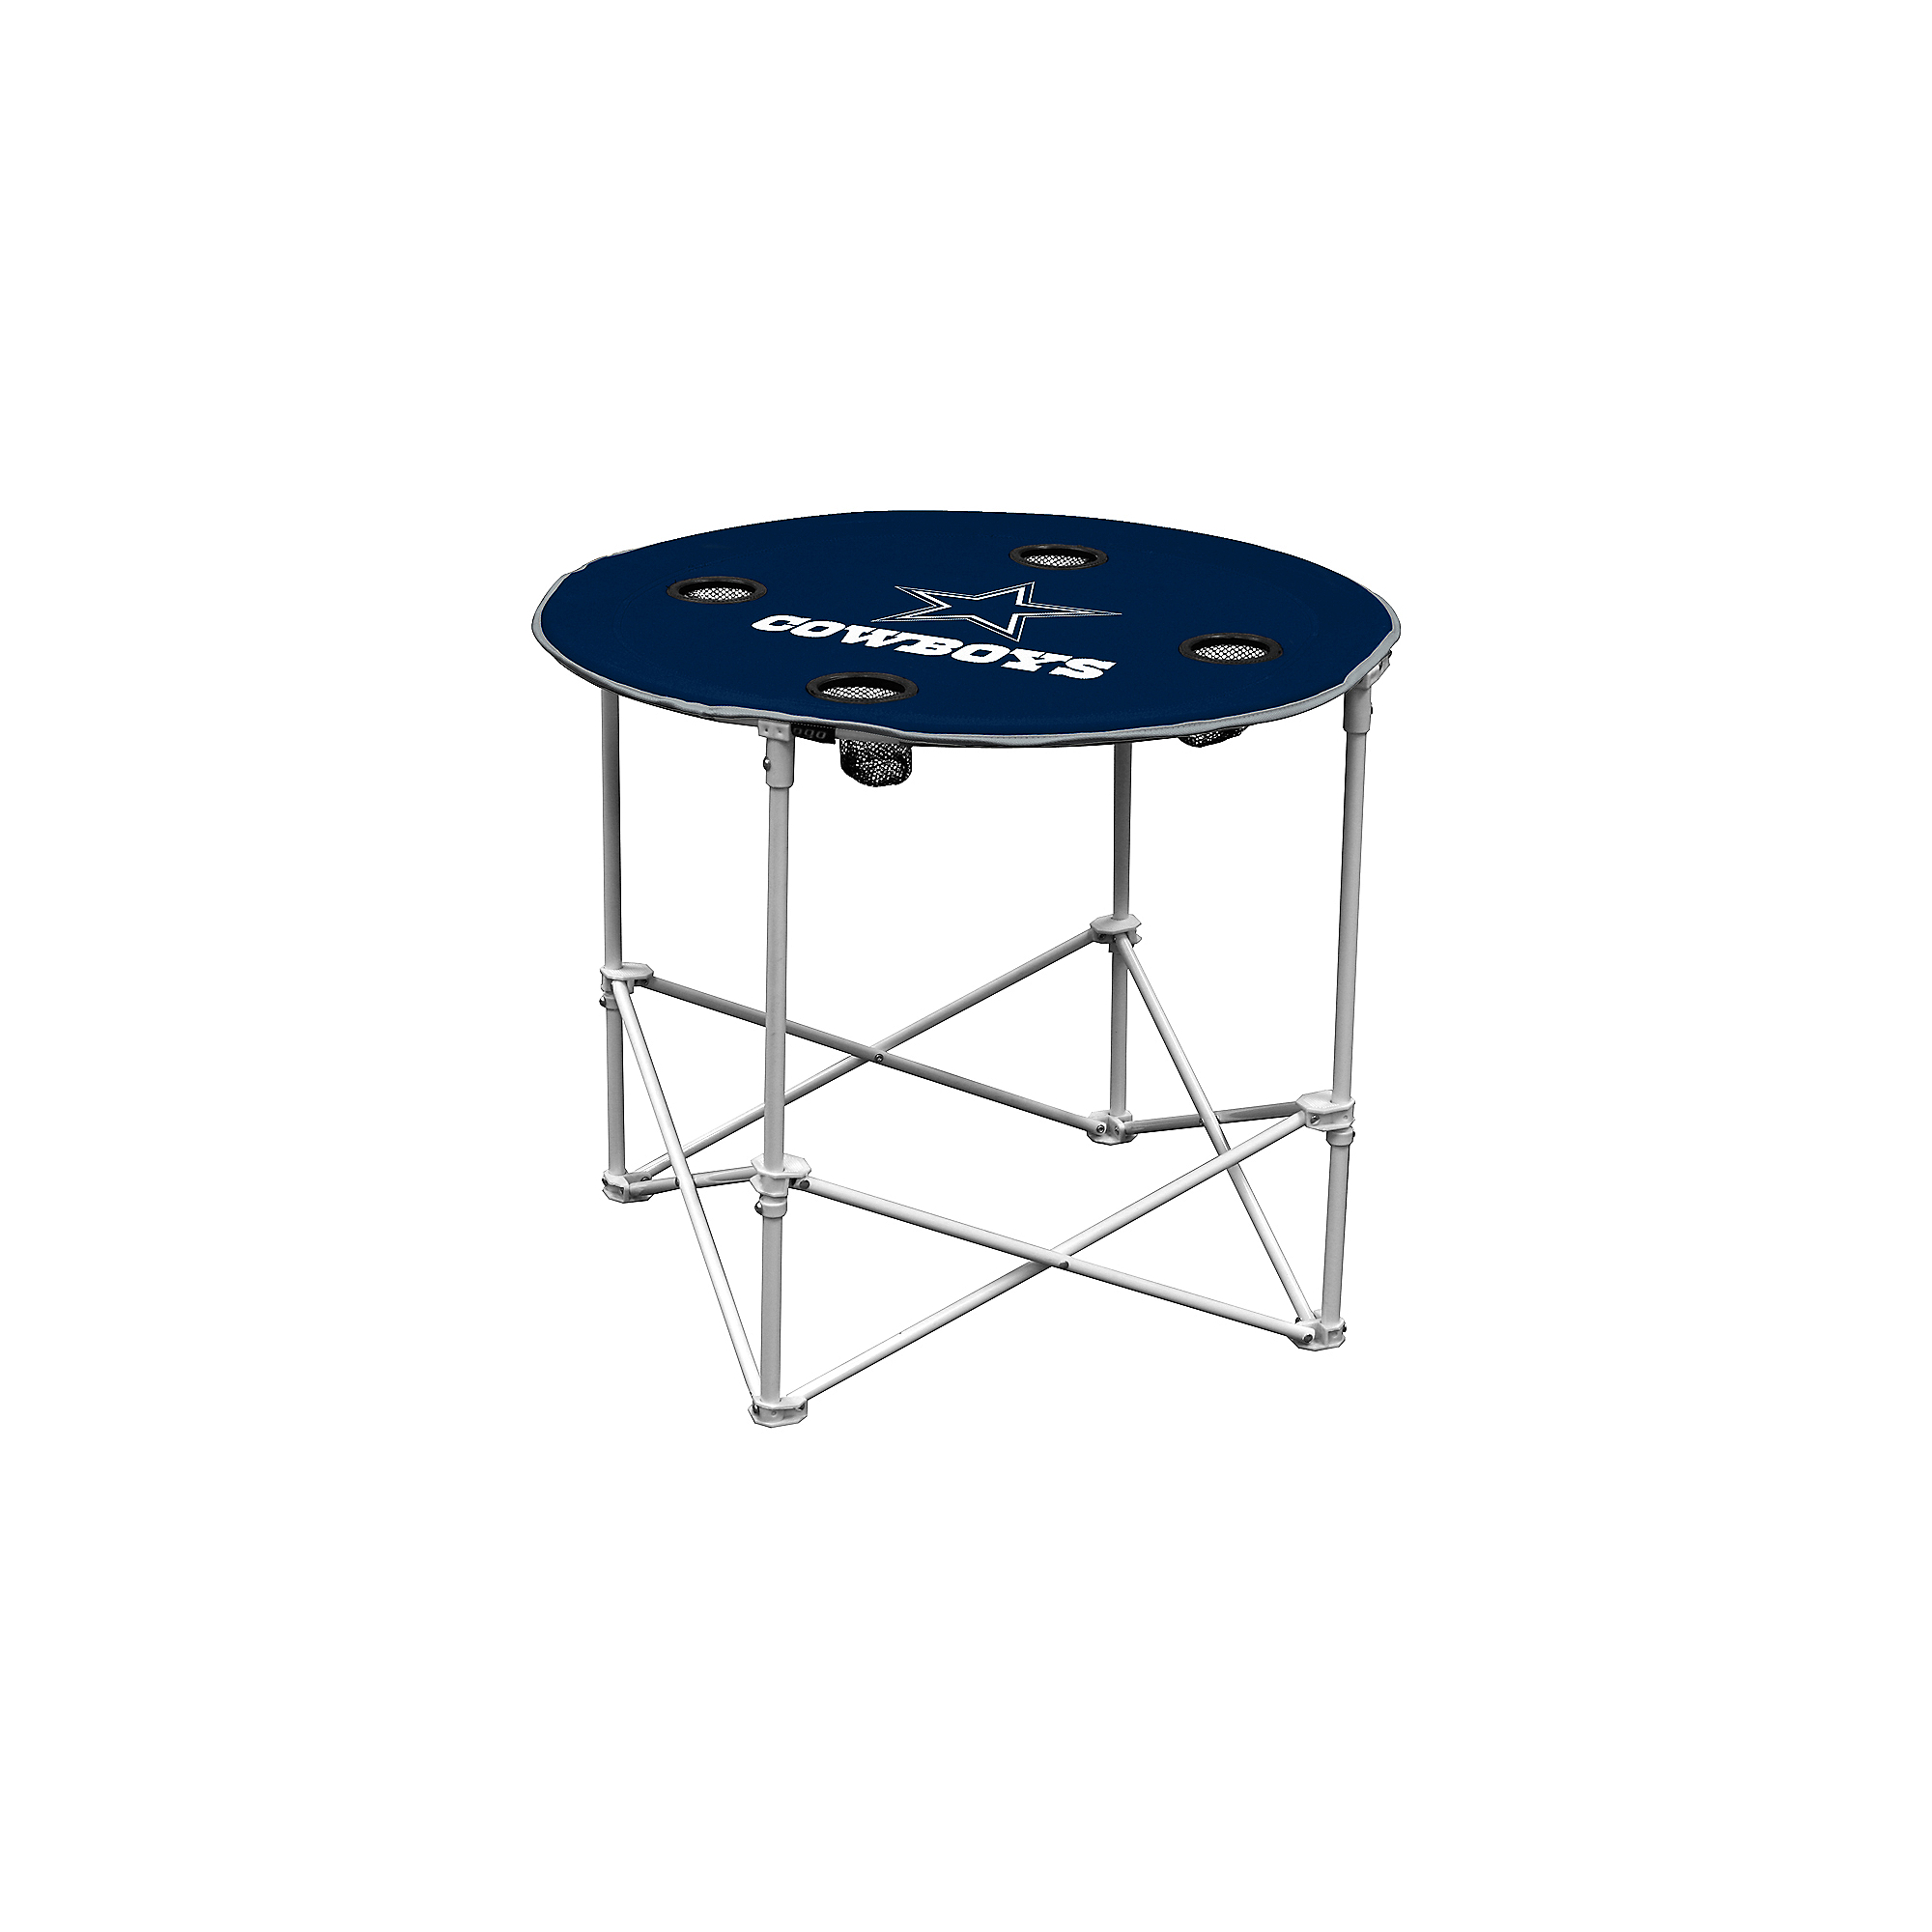 Dallas Cowboys Collapsible Tailgate Table